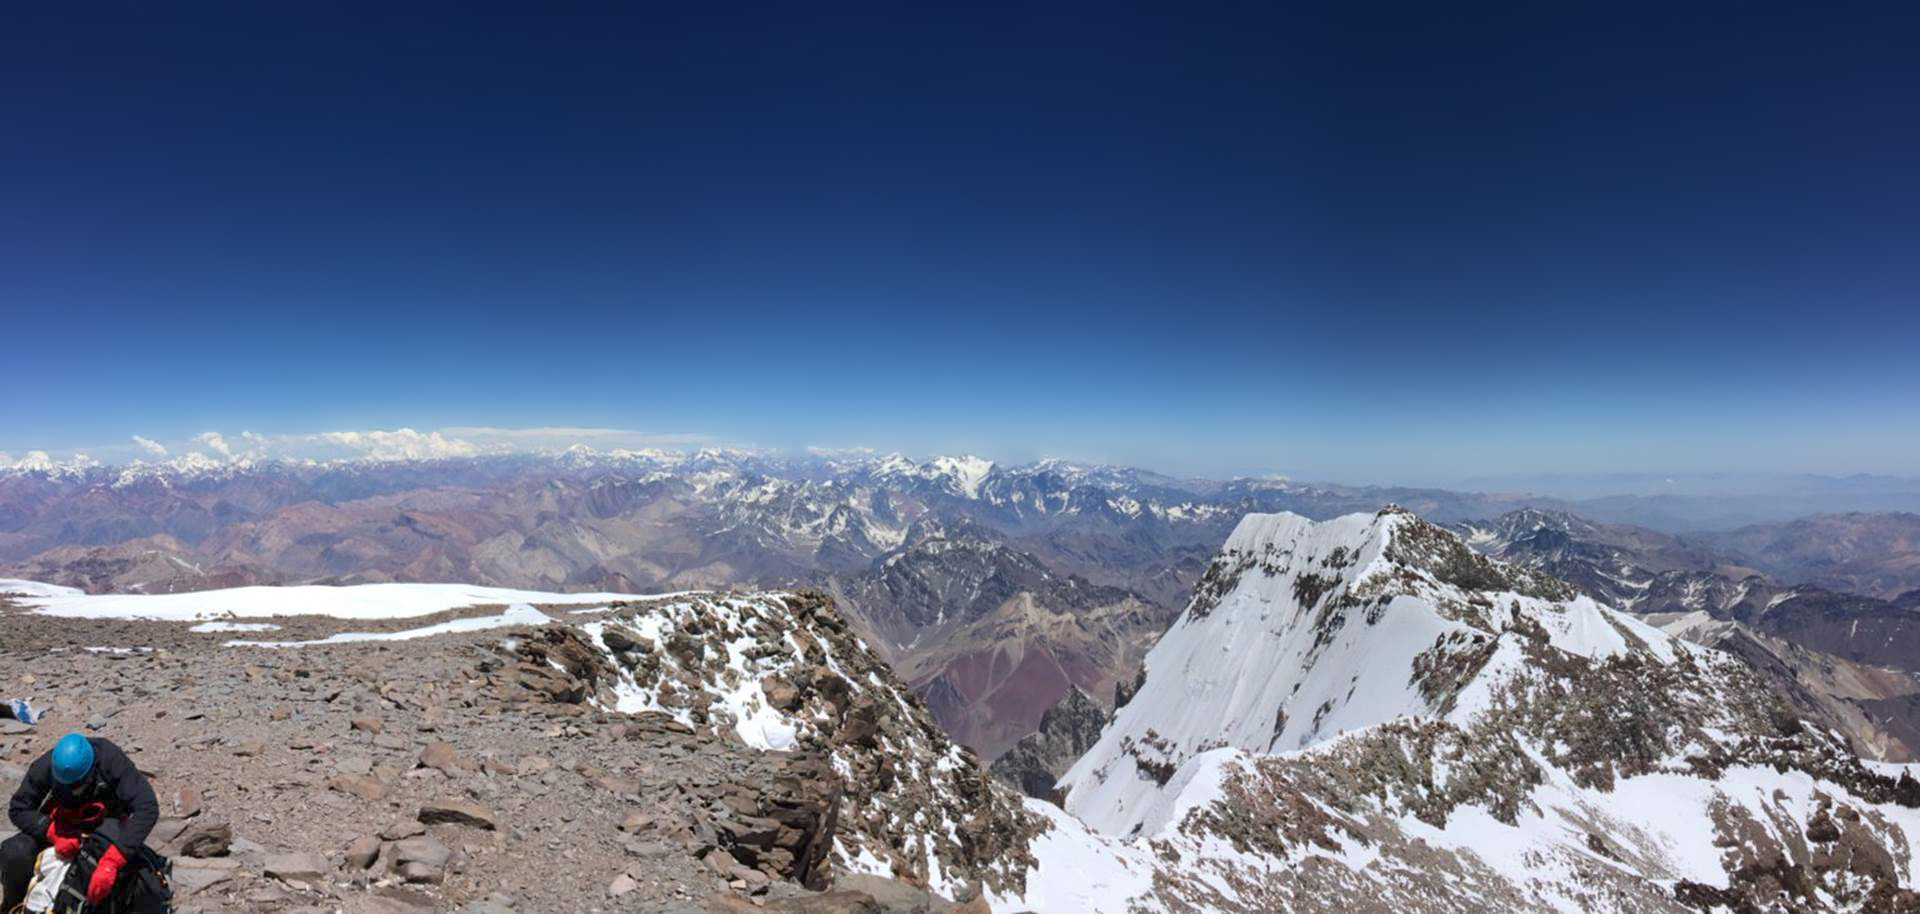 View from the summit of Aconcagua (Jonathan Farnsworth)